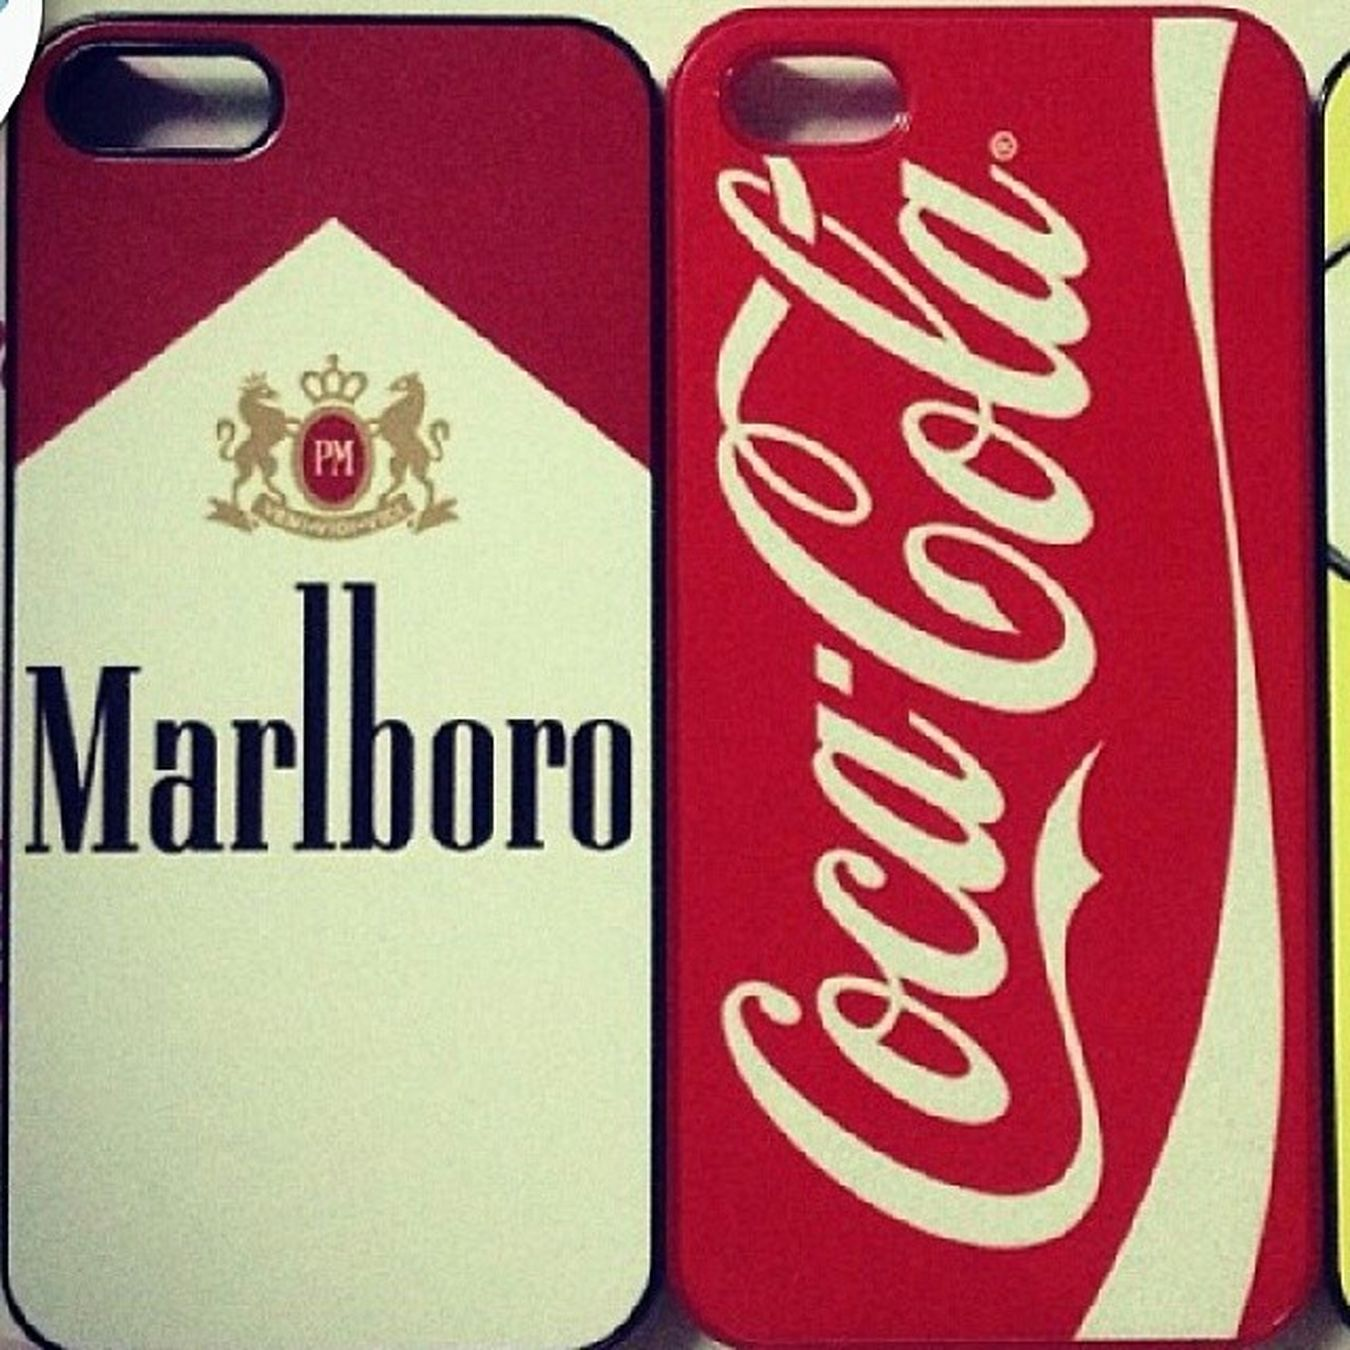 Wanna have your cases personalized?? MADE TO ORDER CASES for》 APPLE》SAMSUNG》 HTC PM US FOR INQUIRIES OR FOLLOW US @ IG : 1c3l1c1ous OR CHECK OUR PAGE AT www.facebook.com/gspot13 Ip4 IP5 Ip4s IPhone ip5c s2 s3 s4 samsung apple htc blackberry casesforsale casingsamsung casesiphone casingiphone casinghtc caseshop casessamsung caseshtc yosi coke